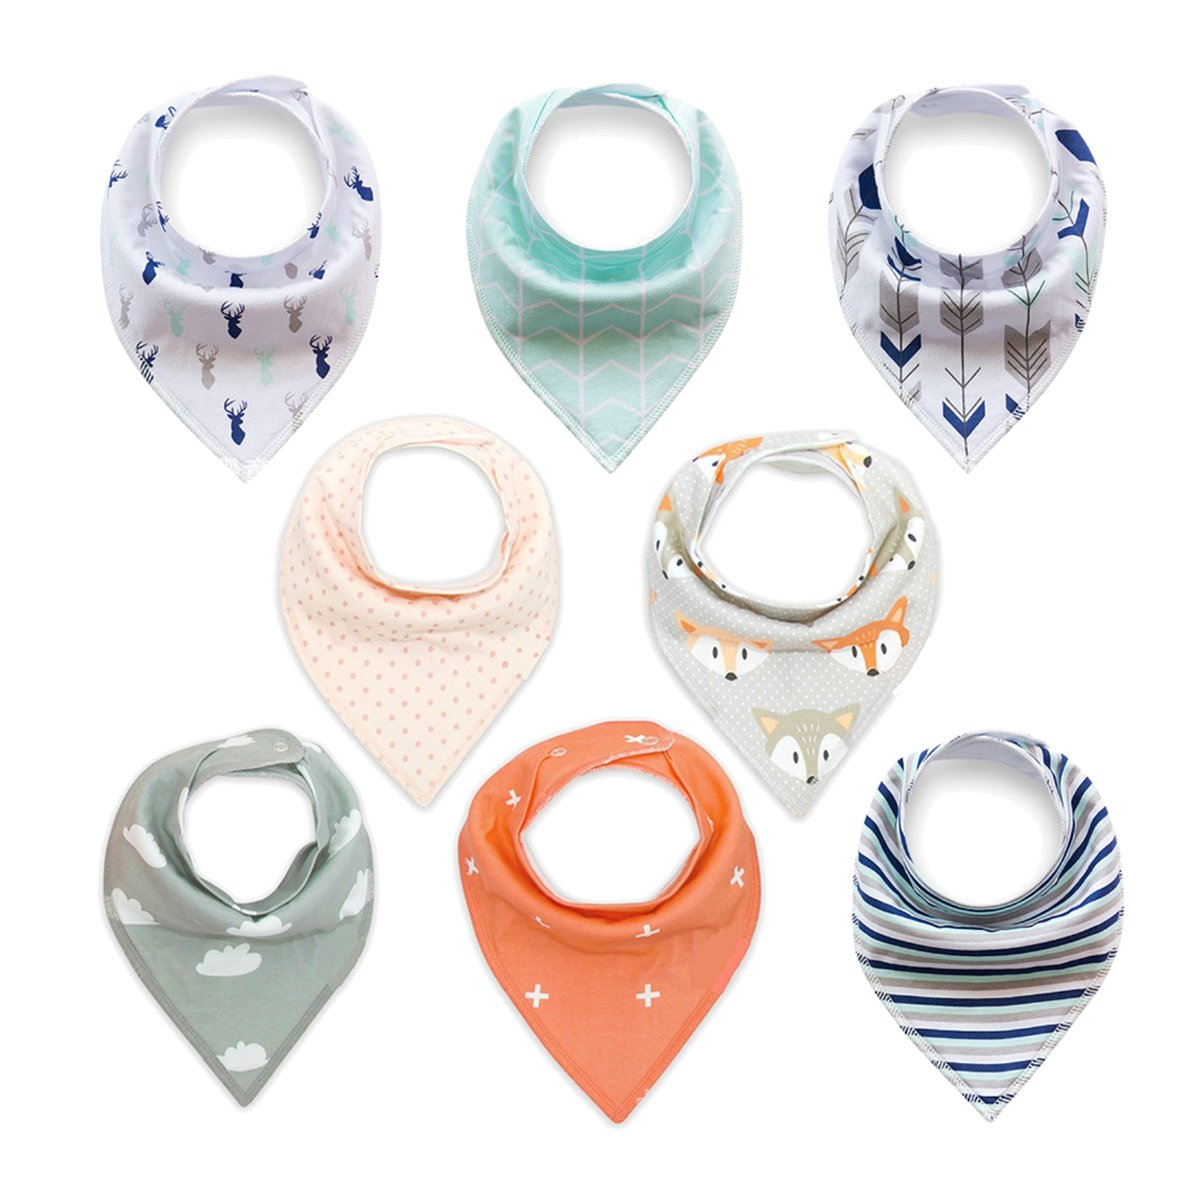 Baby Bandana Drool Bibs, Organic Absorbent Cotton Bibs for Drooling and Teething Feeding Gift Set for Boys Girls Baby Shower Gift Burp Cloth 8-Pack